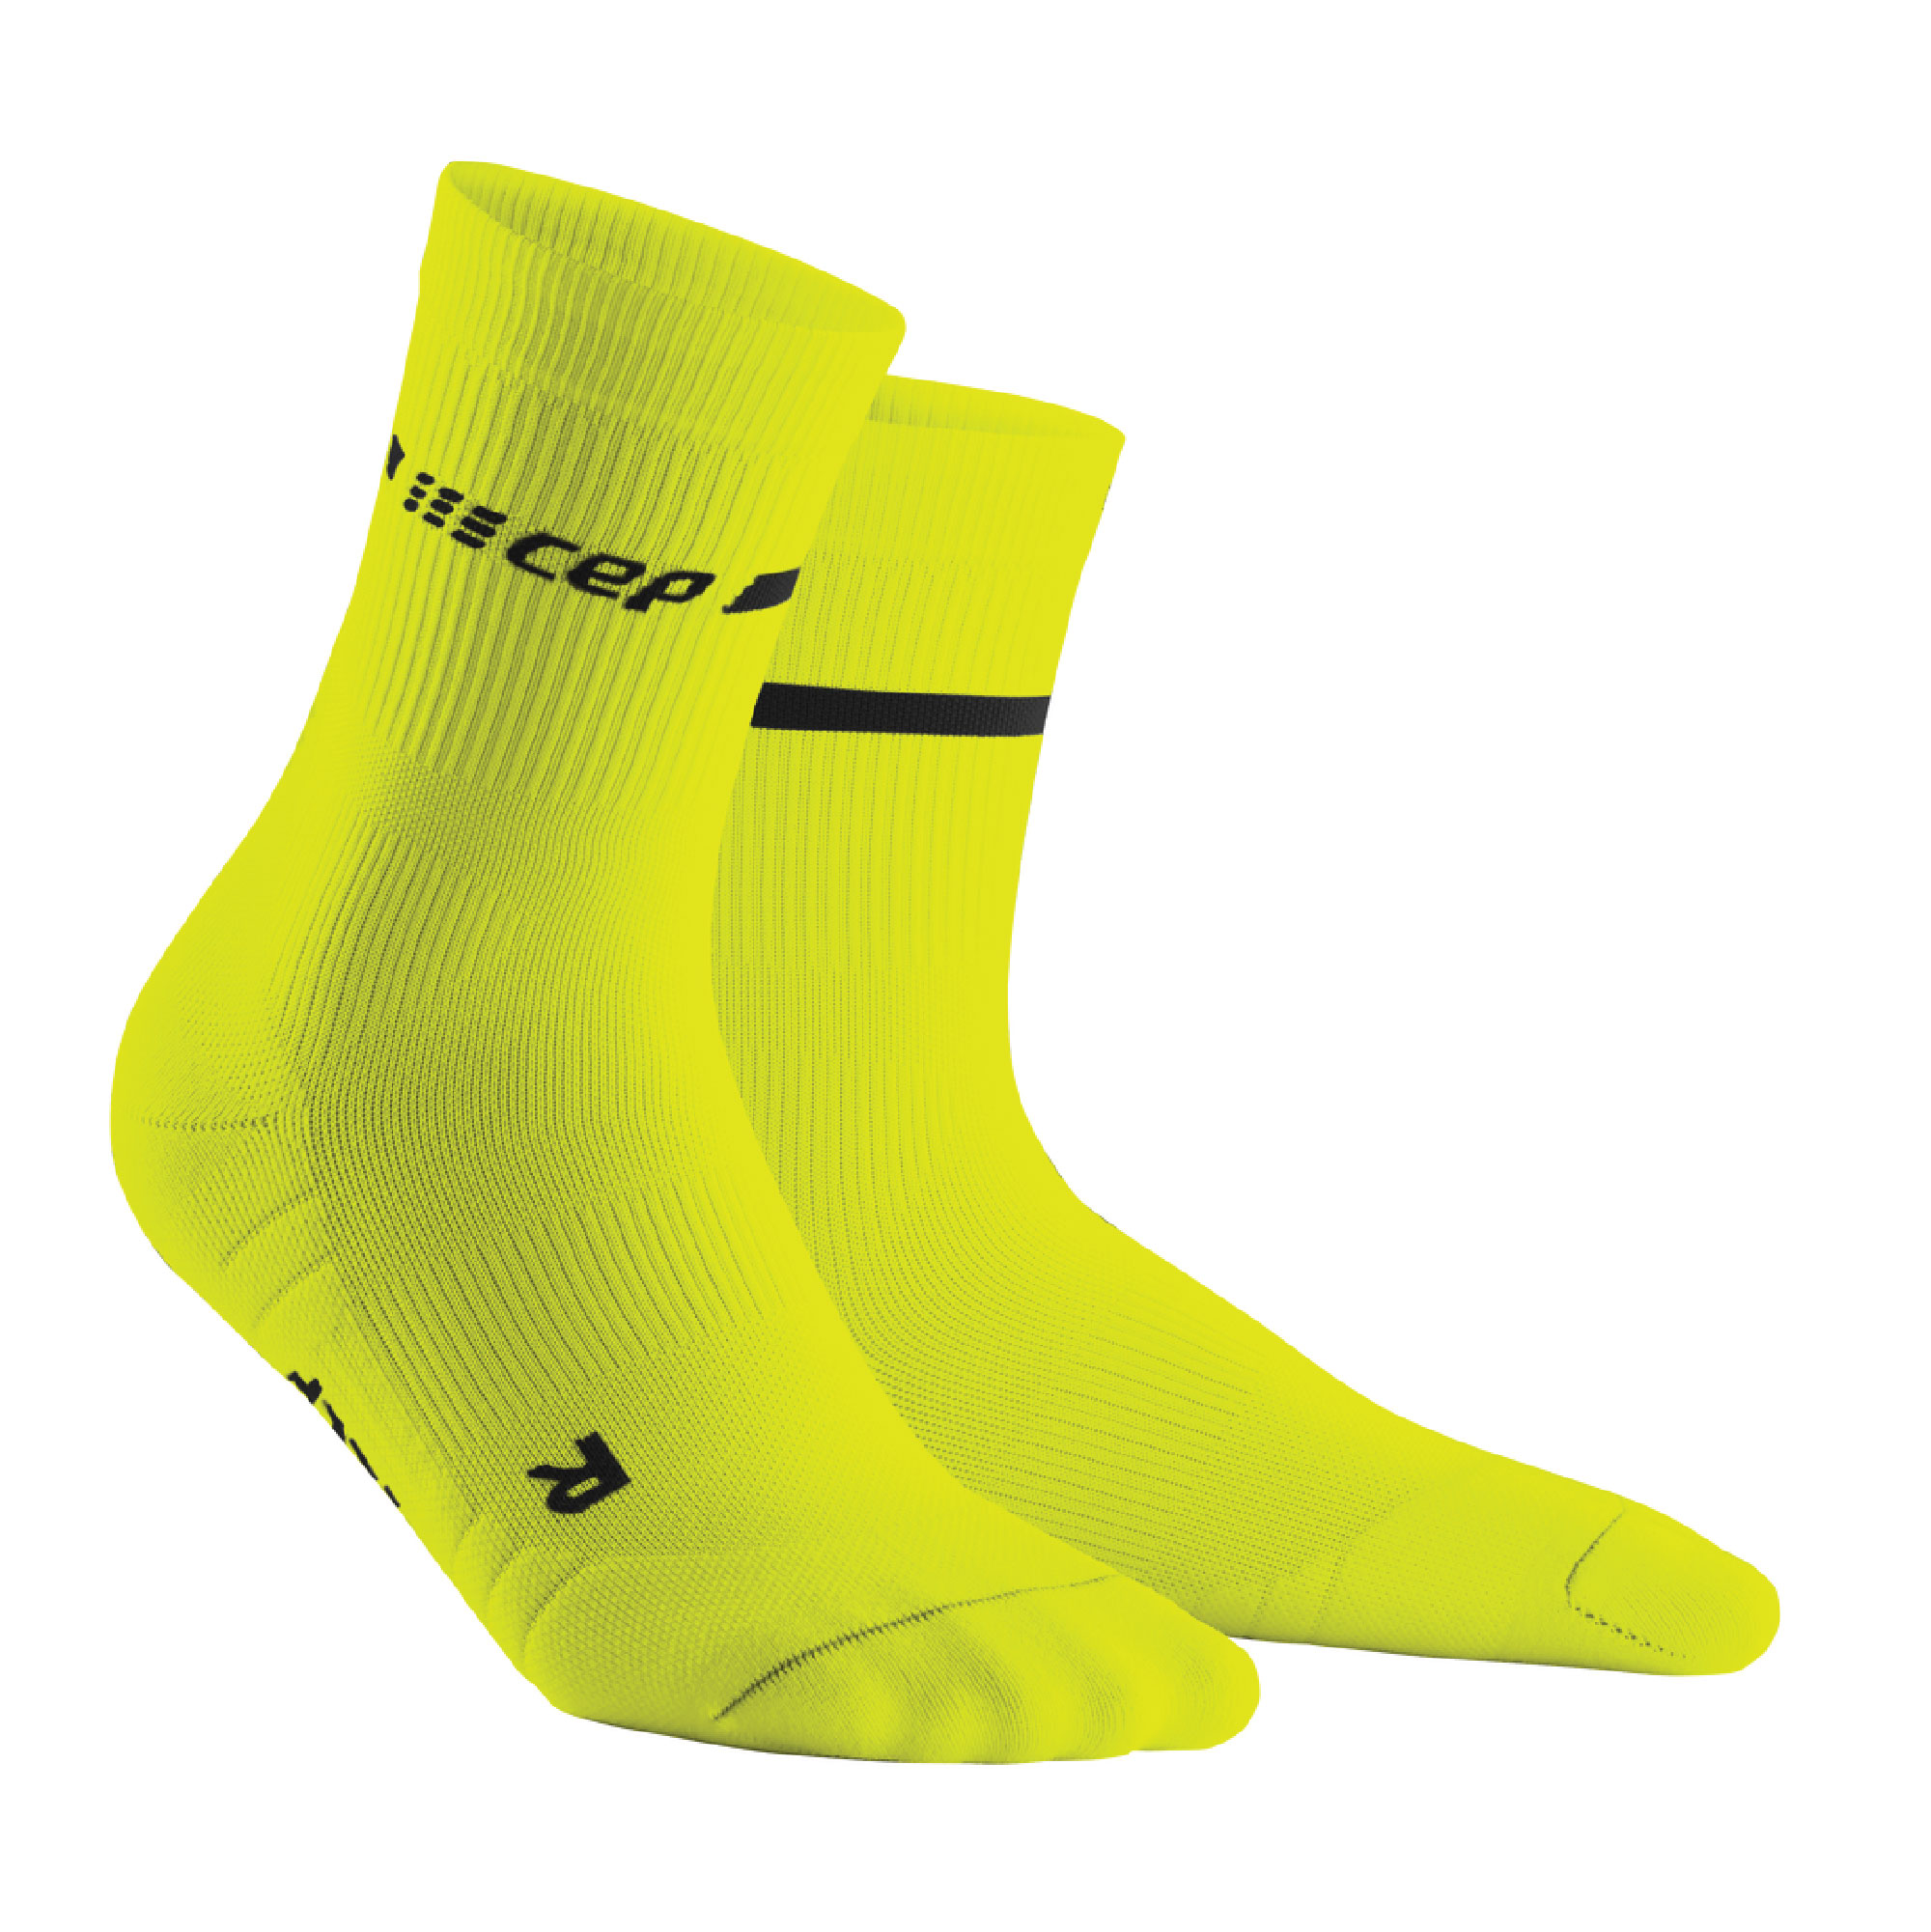 NEON MID-CUT SOCKS | WOMEN